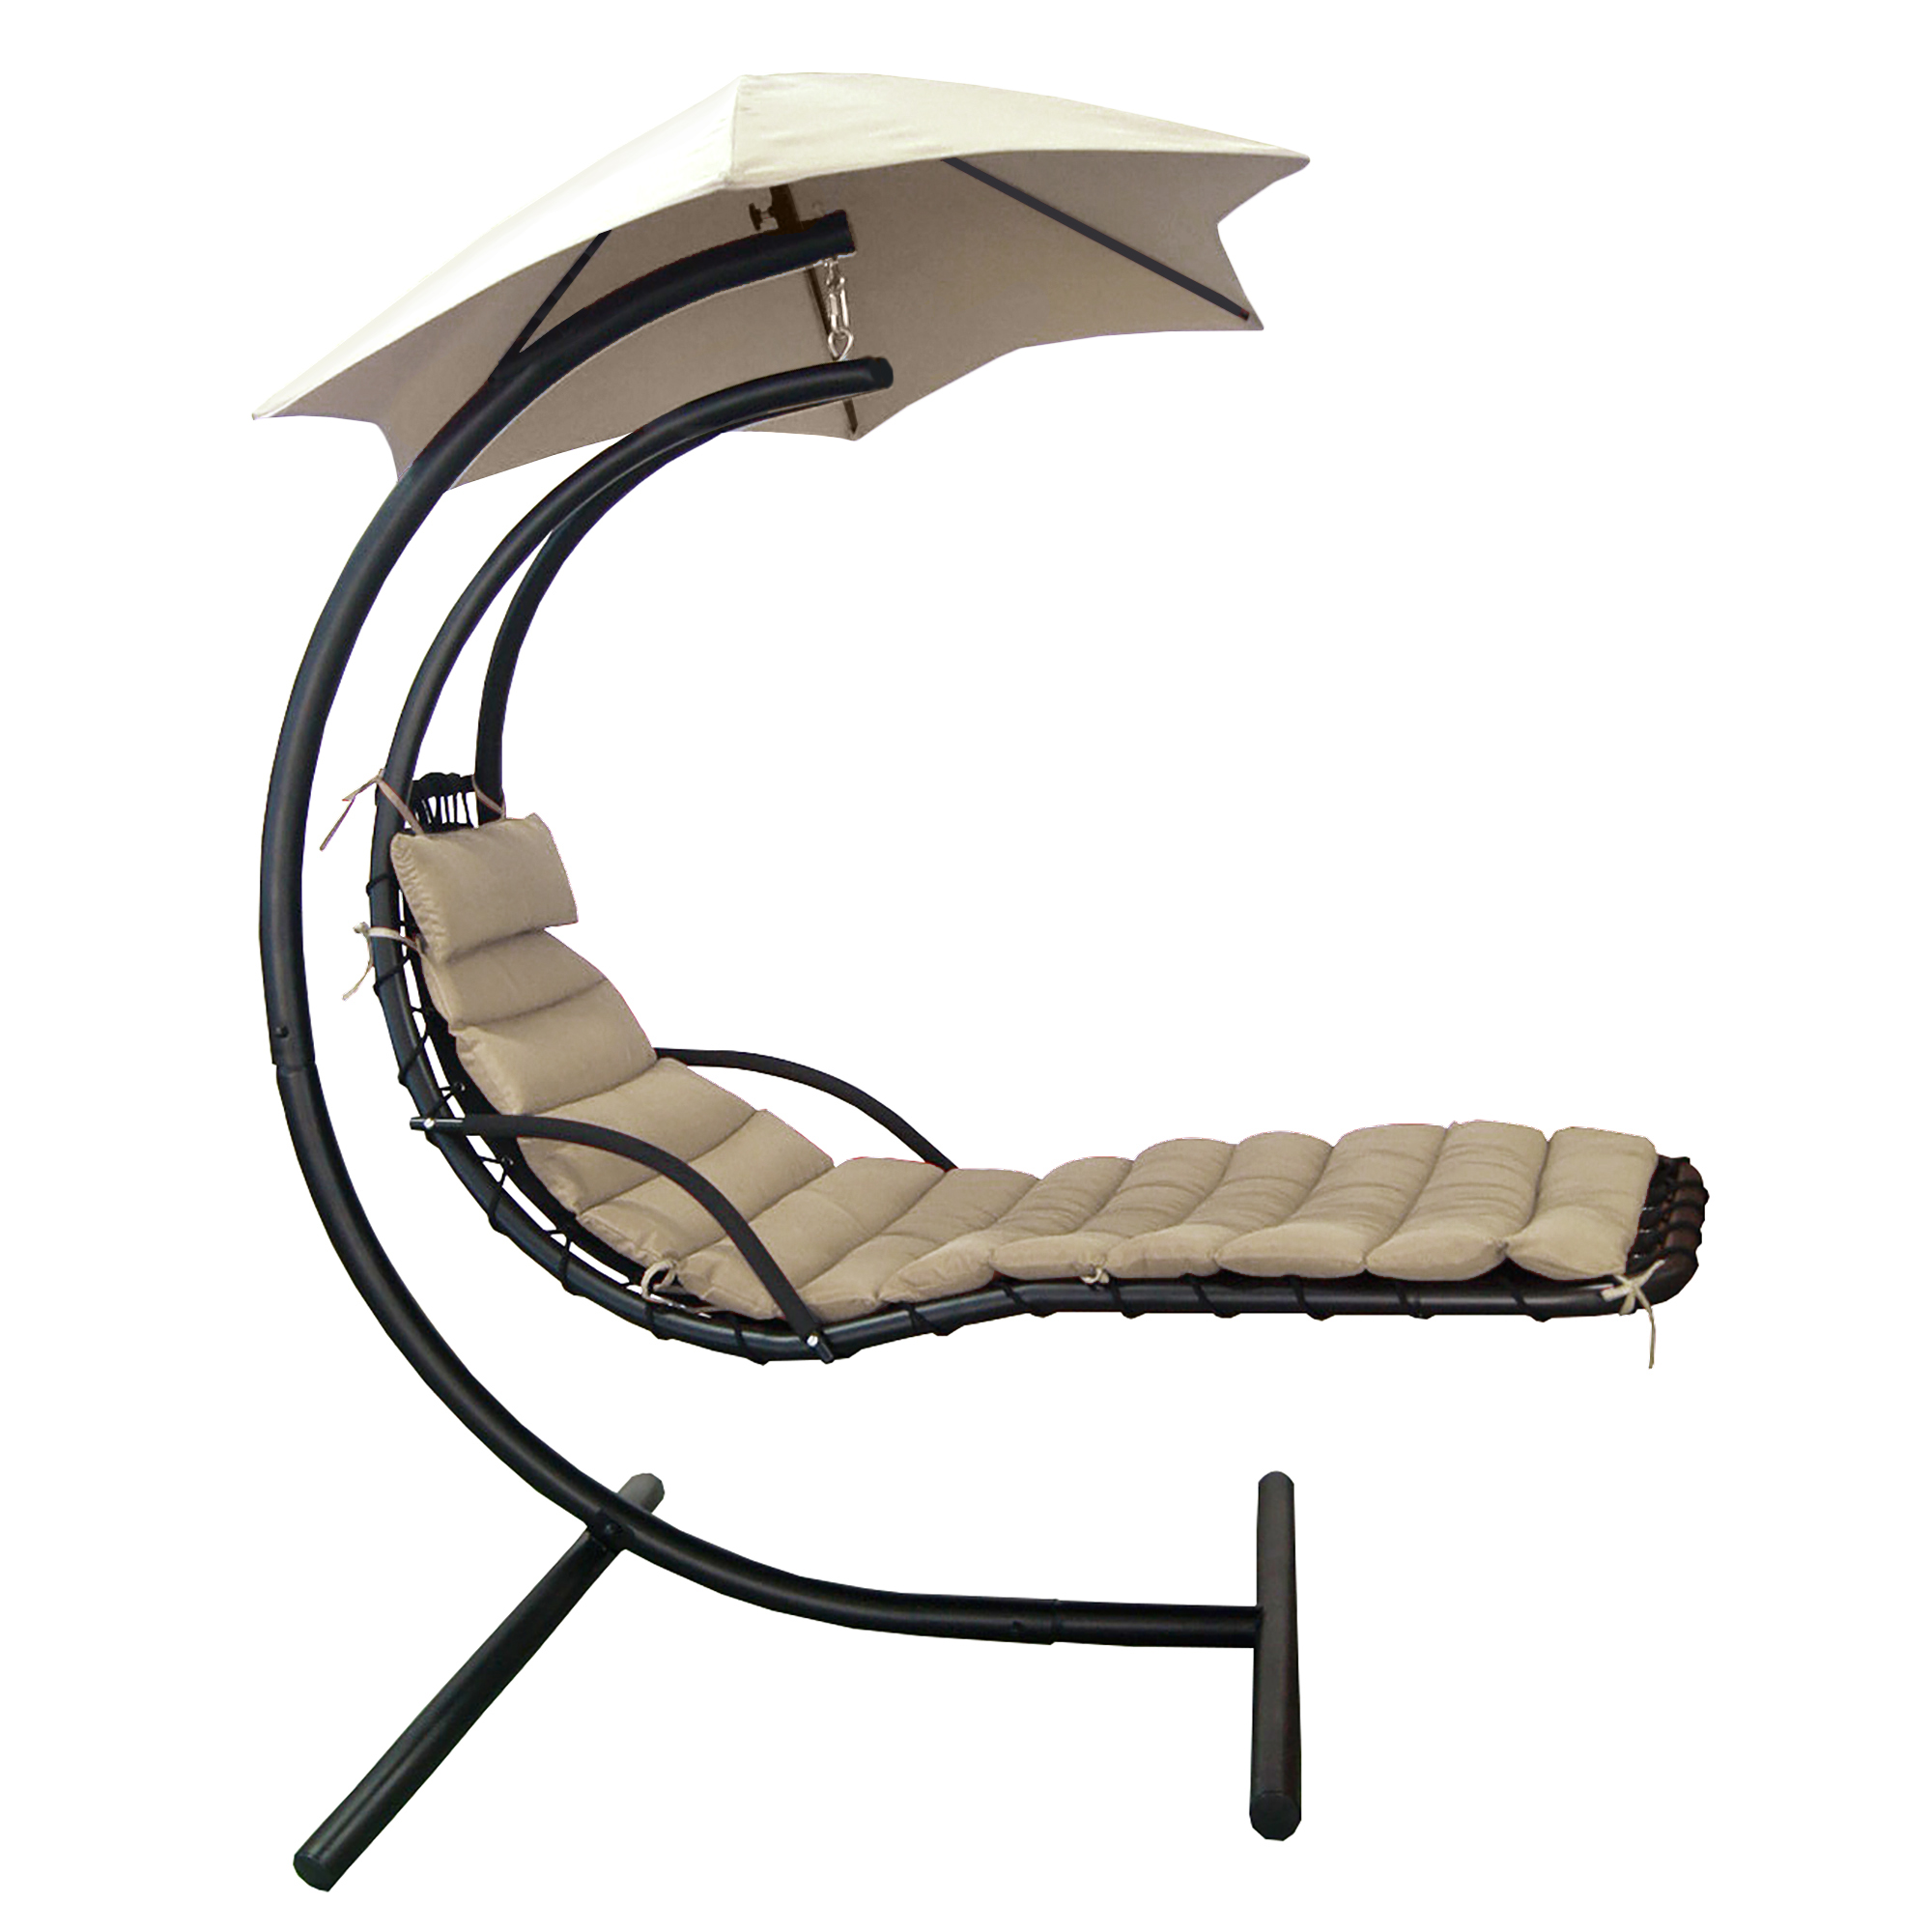 hanging umbrella chair kids personalized chairs island retreat lounge w shade